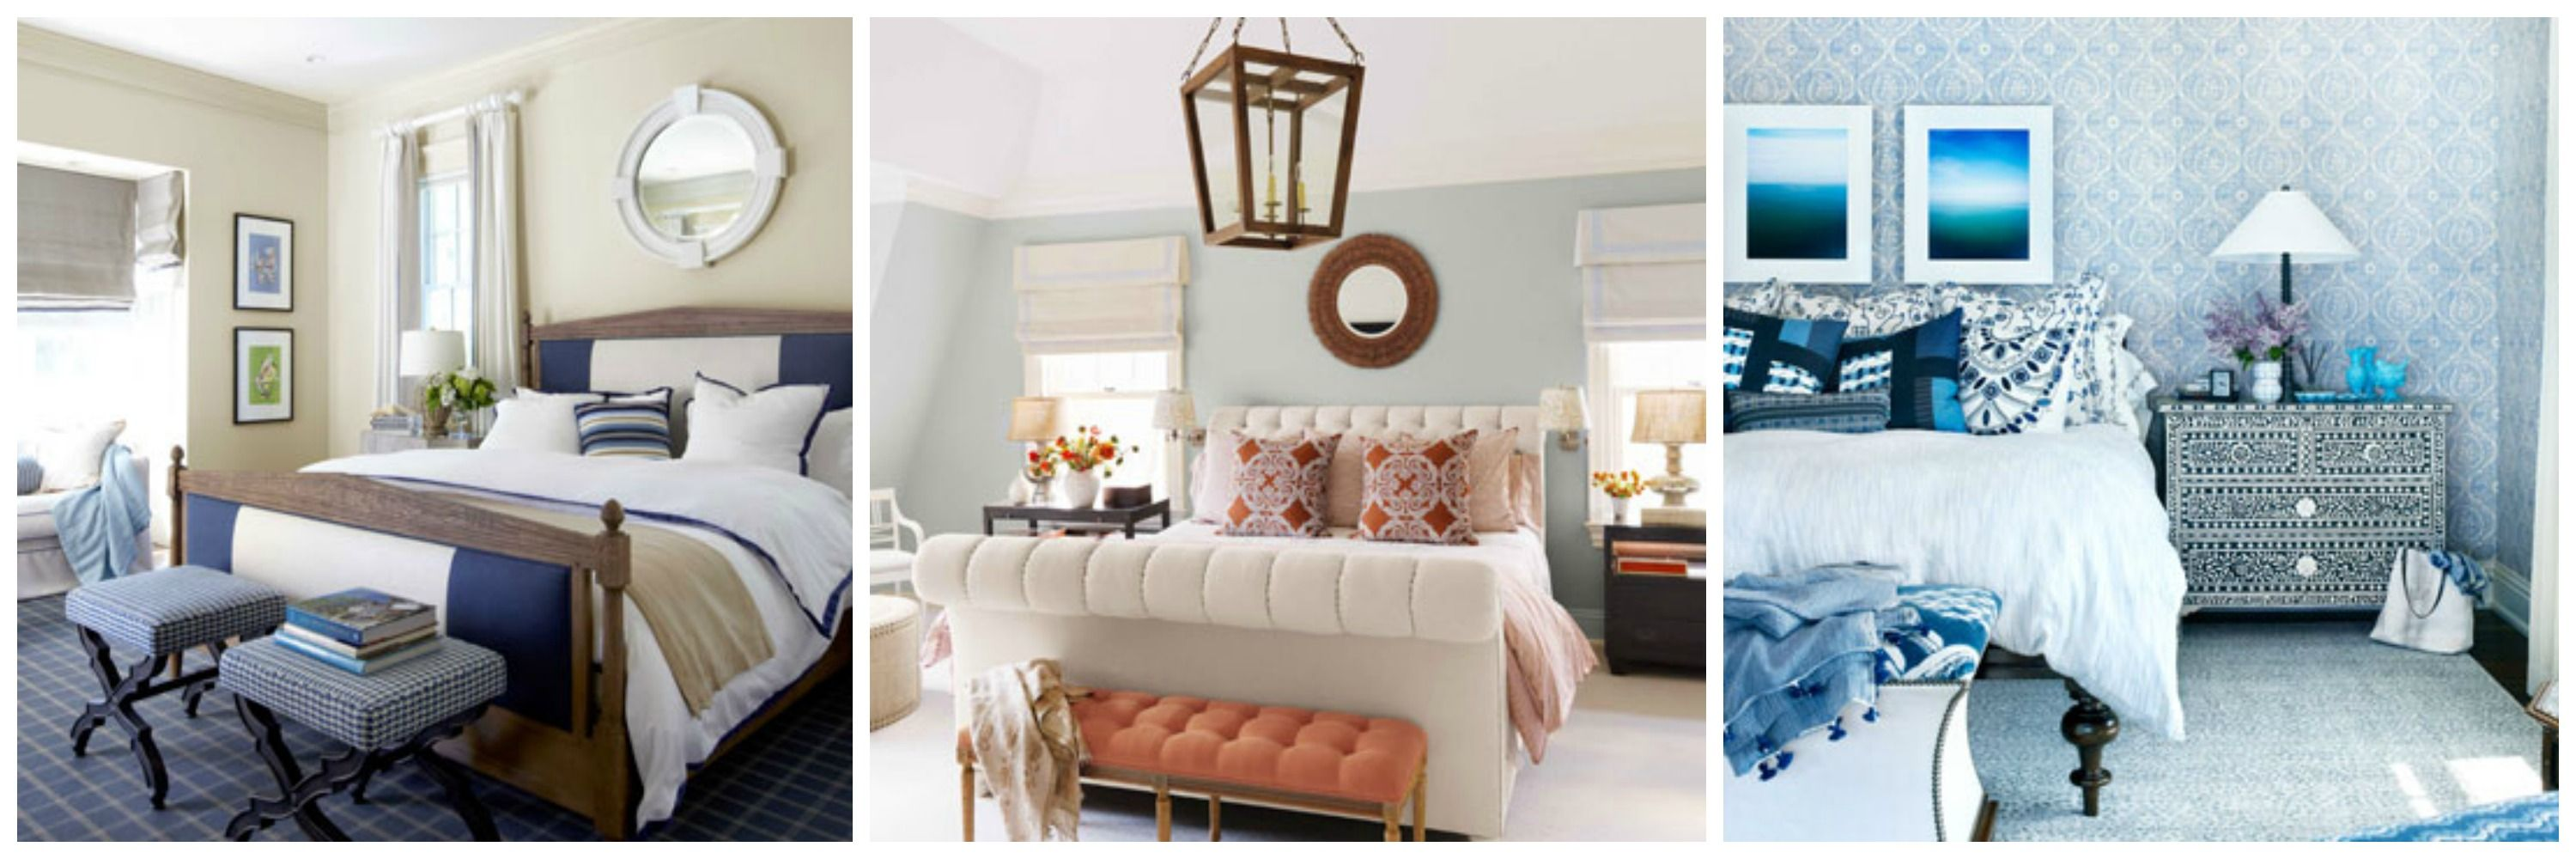 Bedrooms come in all styles, shapes, and sizes, so how do you design your own? We've got your bedroom decorating inspiration here so you can choose from, there's an idea for everyone. http://bit.ly/1pRjgez